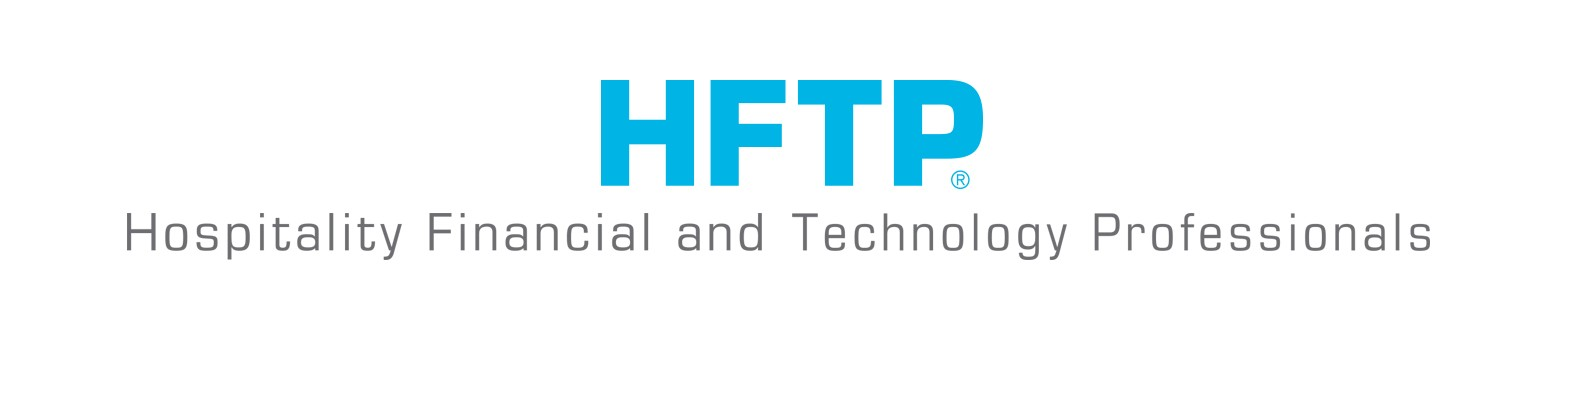 Hospitality Financial and Technology Professionals (HFTP